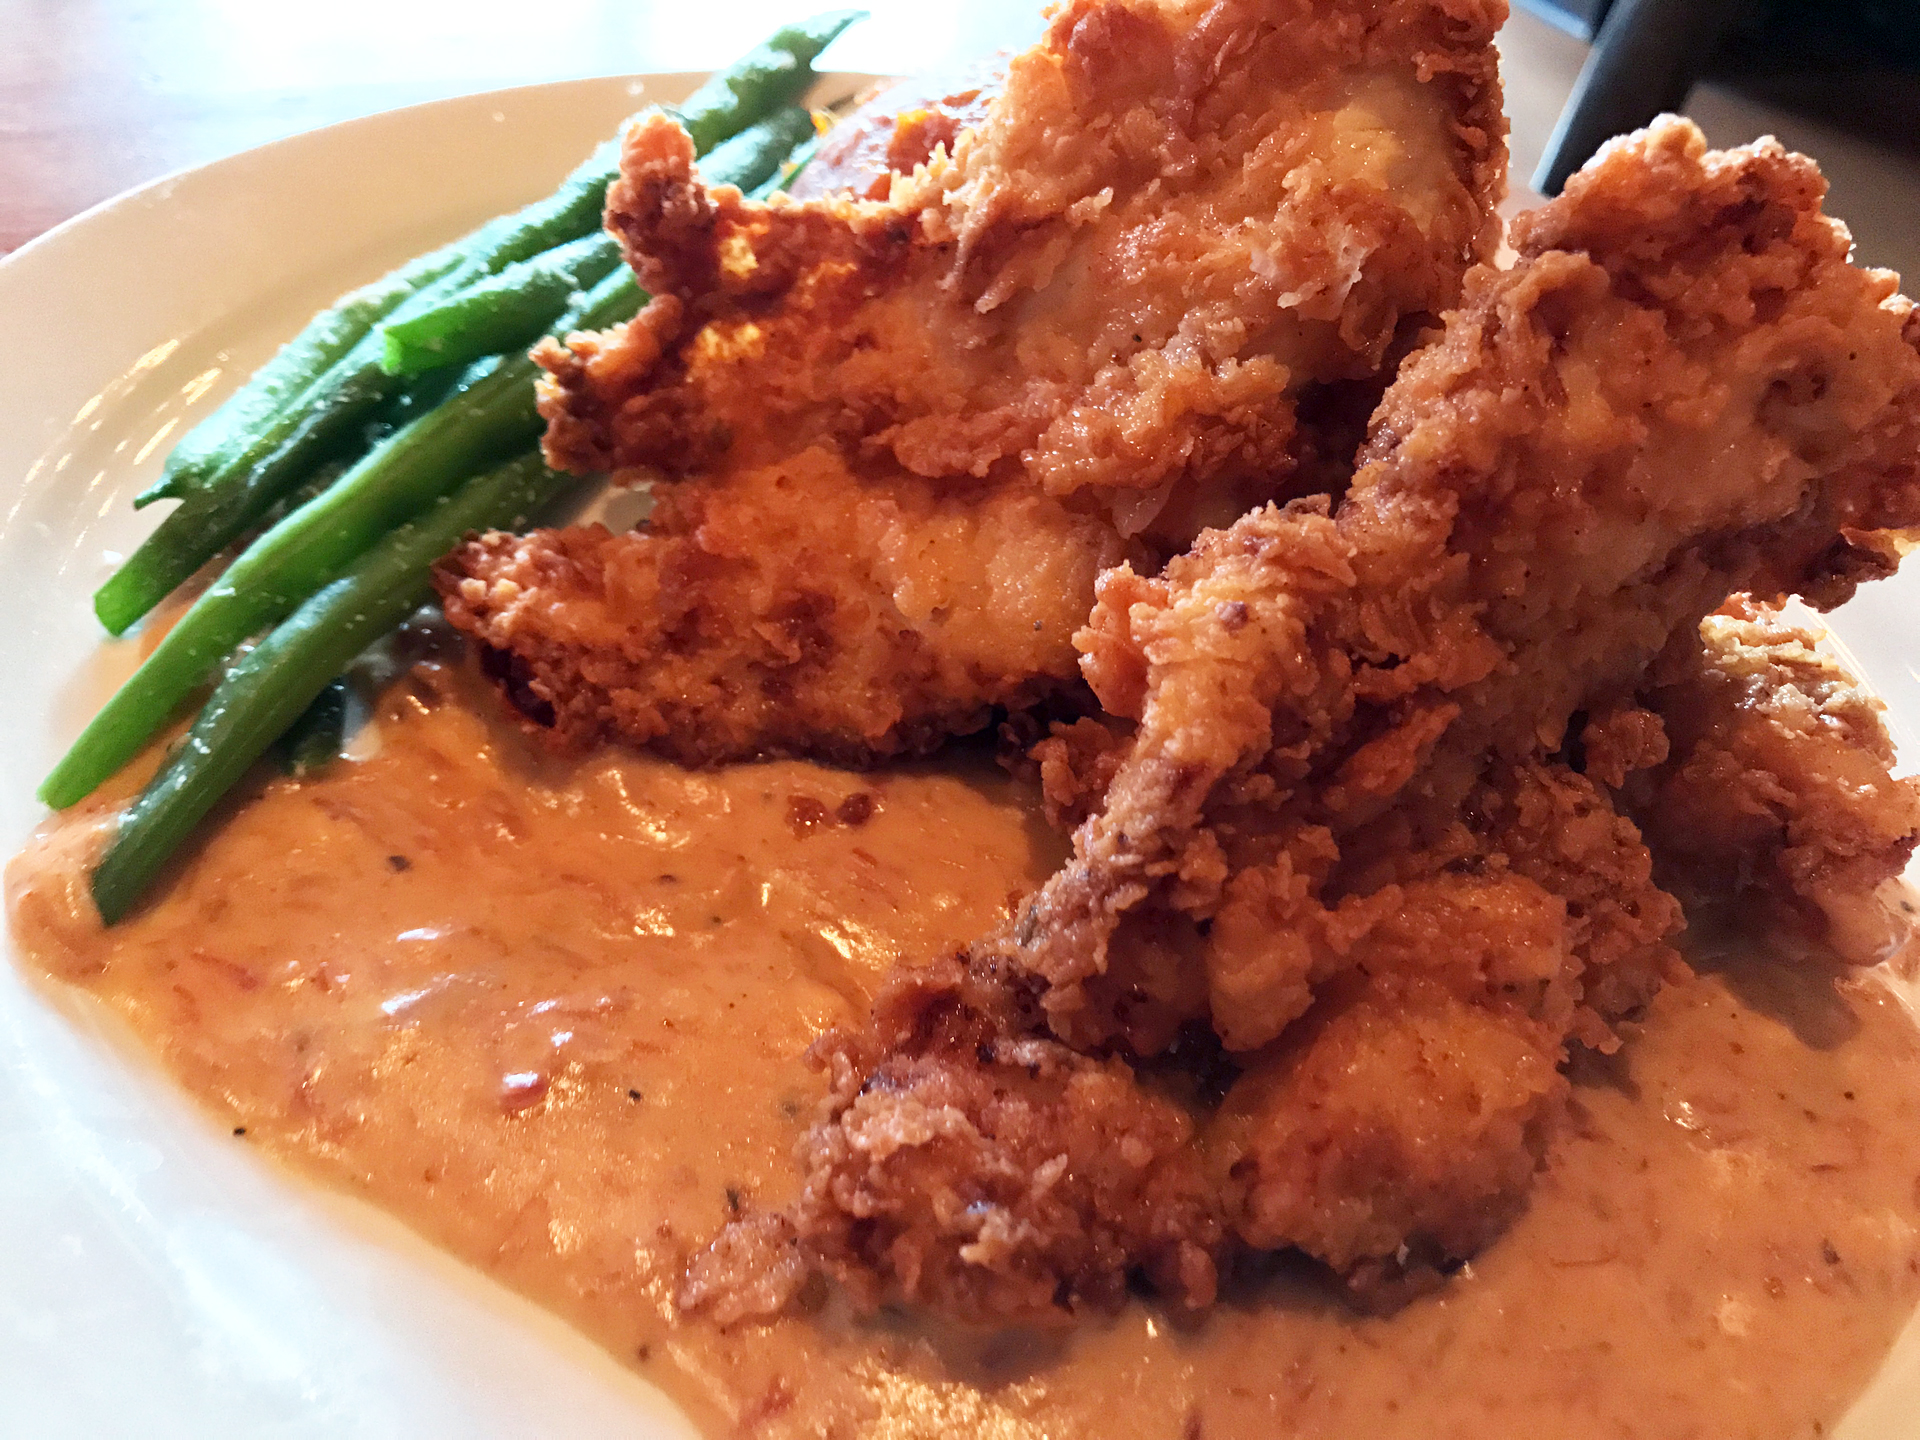 Downtown Berkeley's Angeline's does fried chicken with a New Orleans twist.